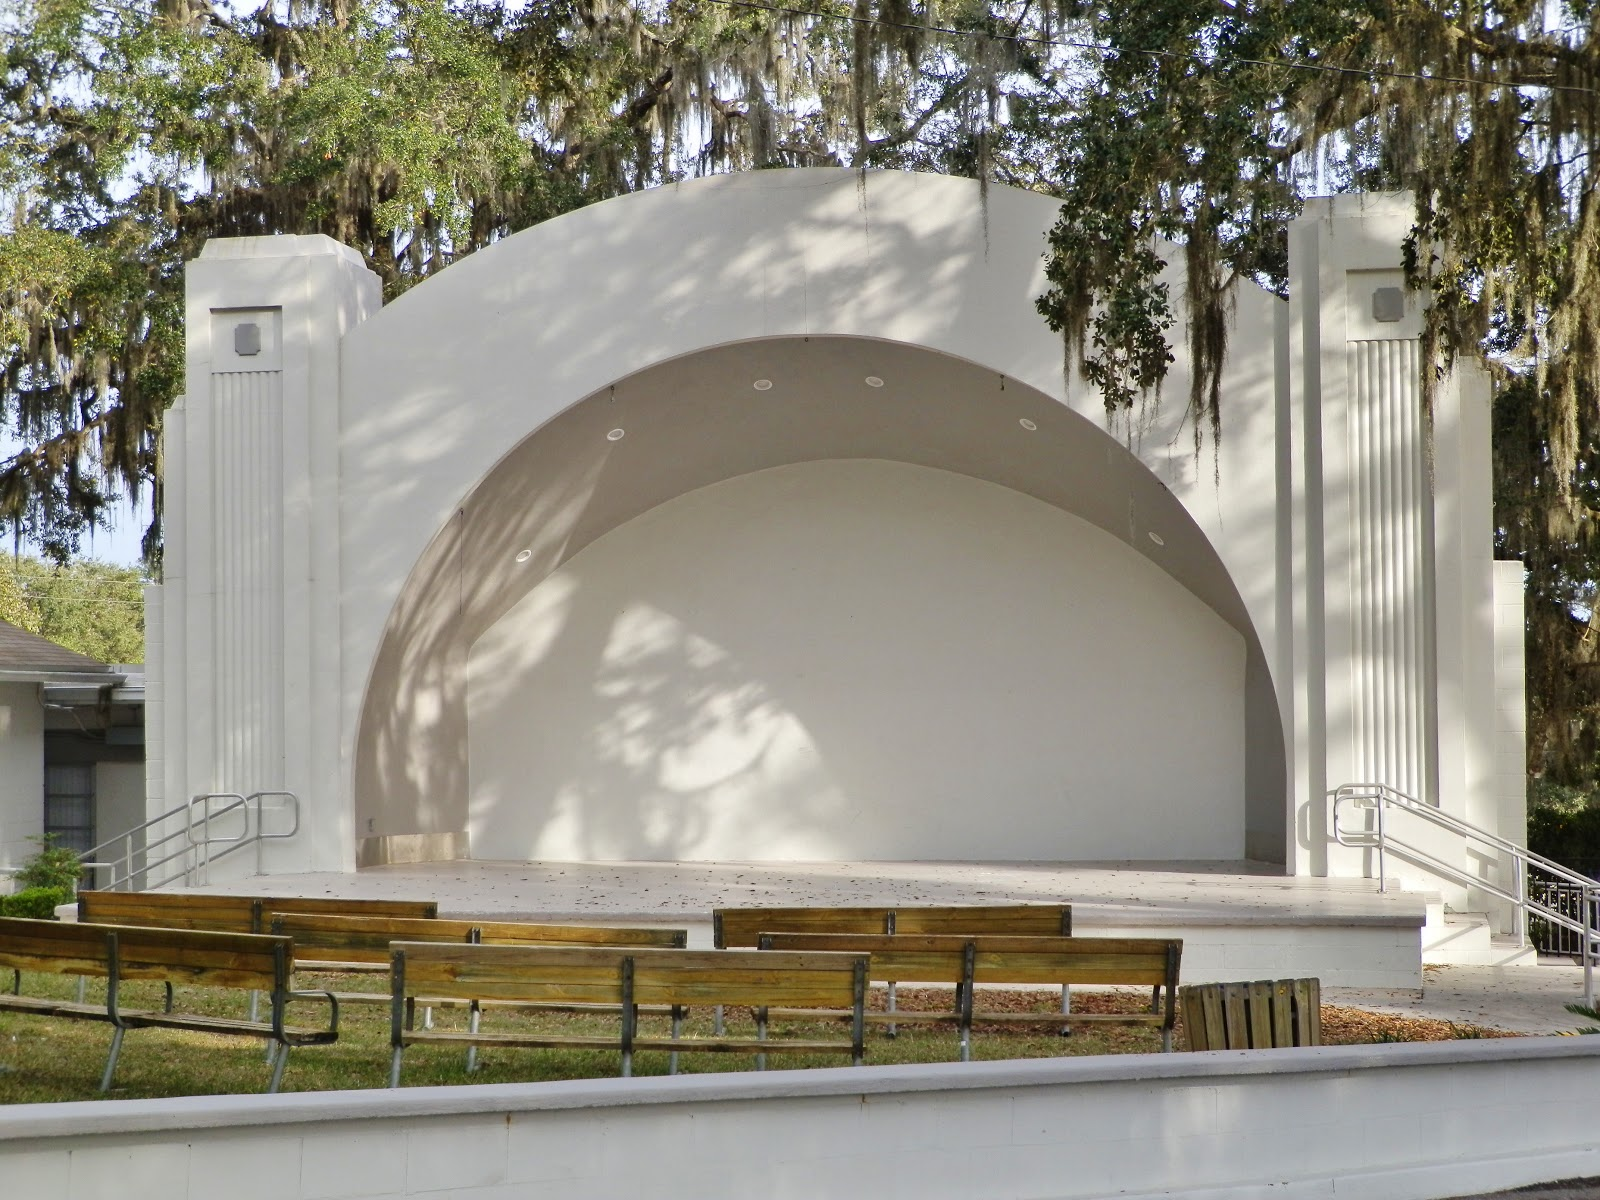 Places To Go Buildings To See Hernando Park Bandshell